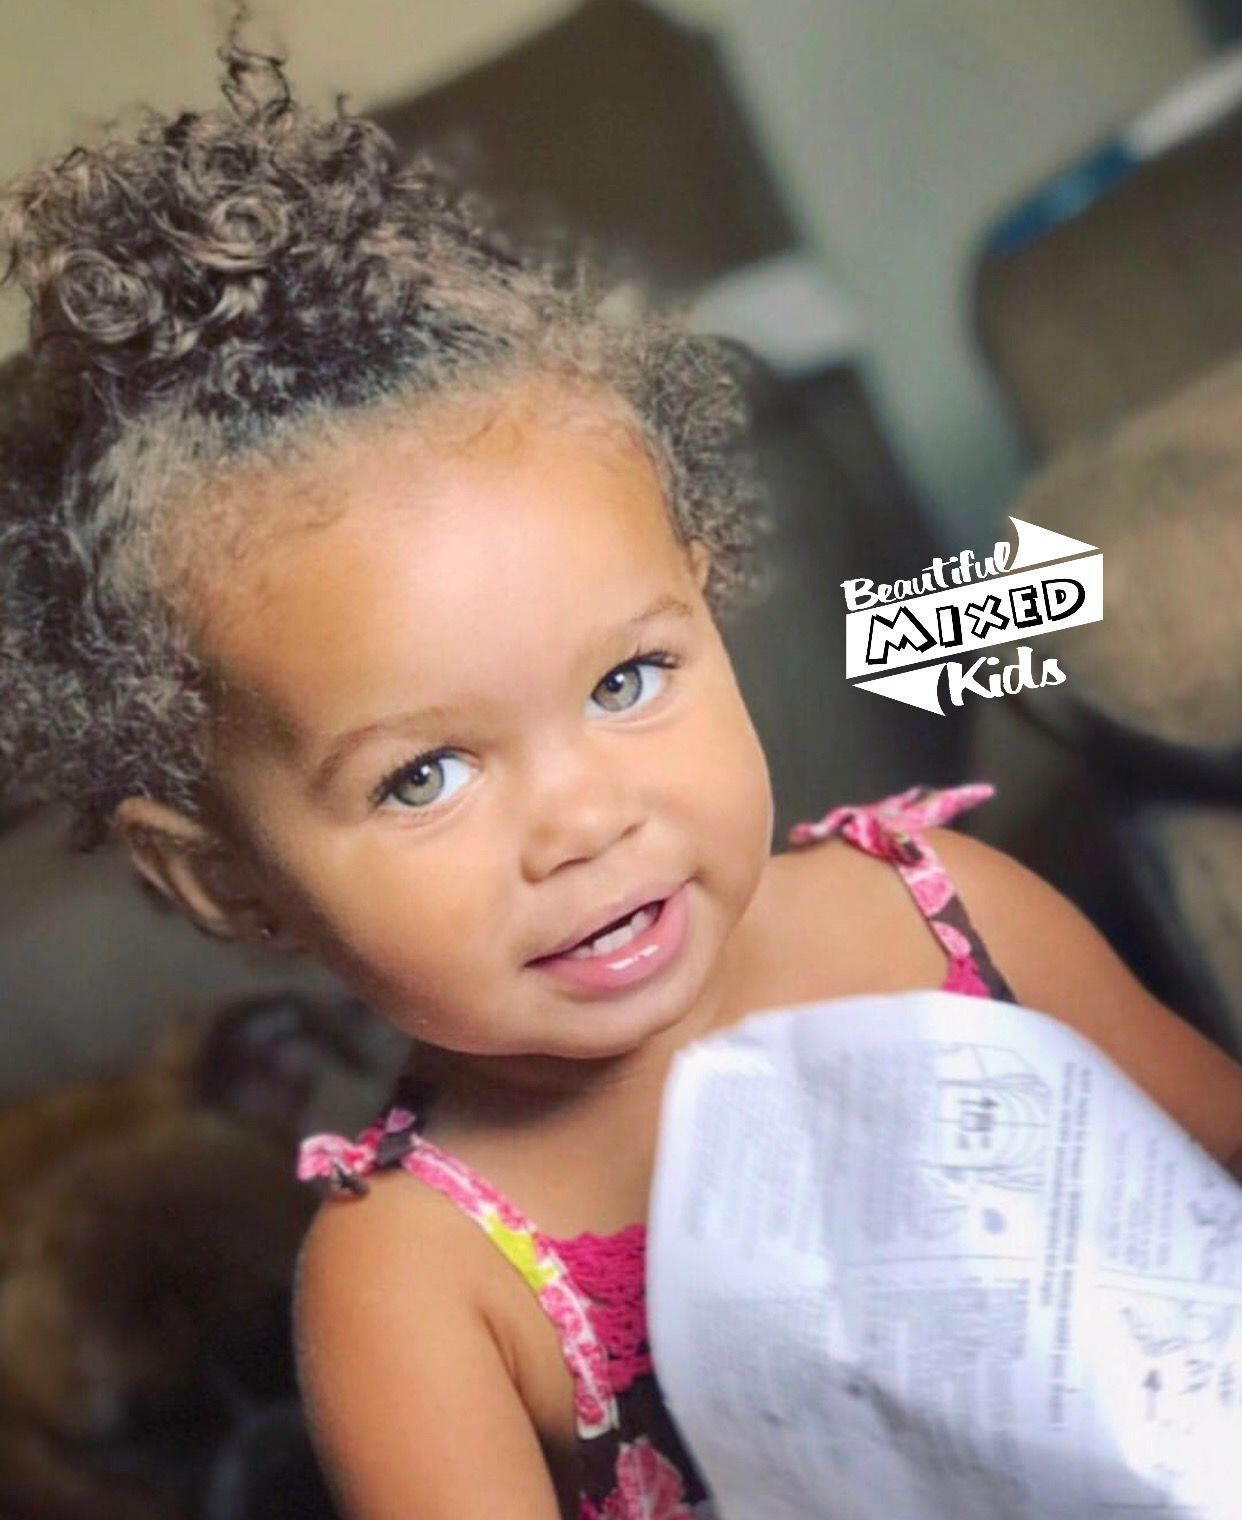 Pin by Mary McCann on Worldwide Faces | Biracial babies ...